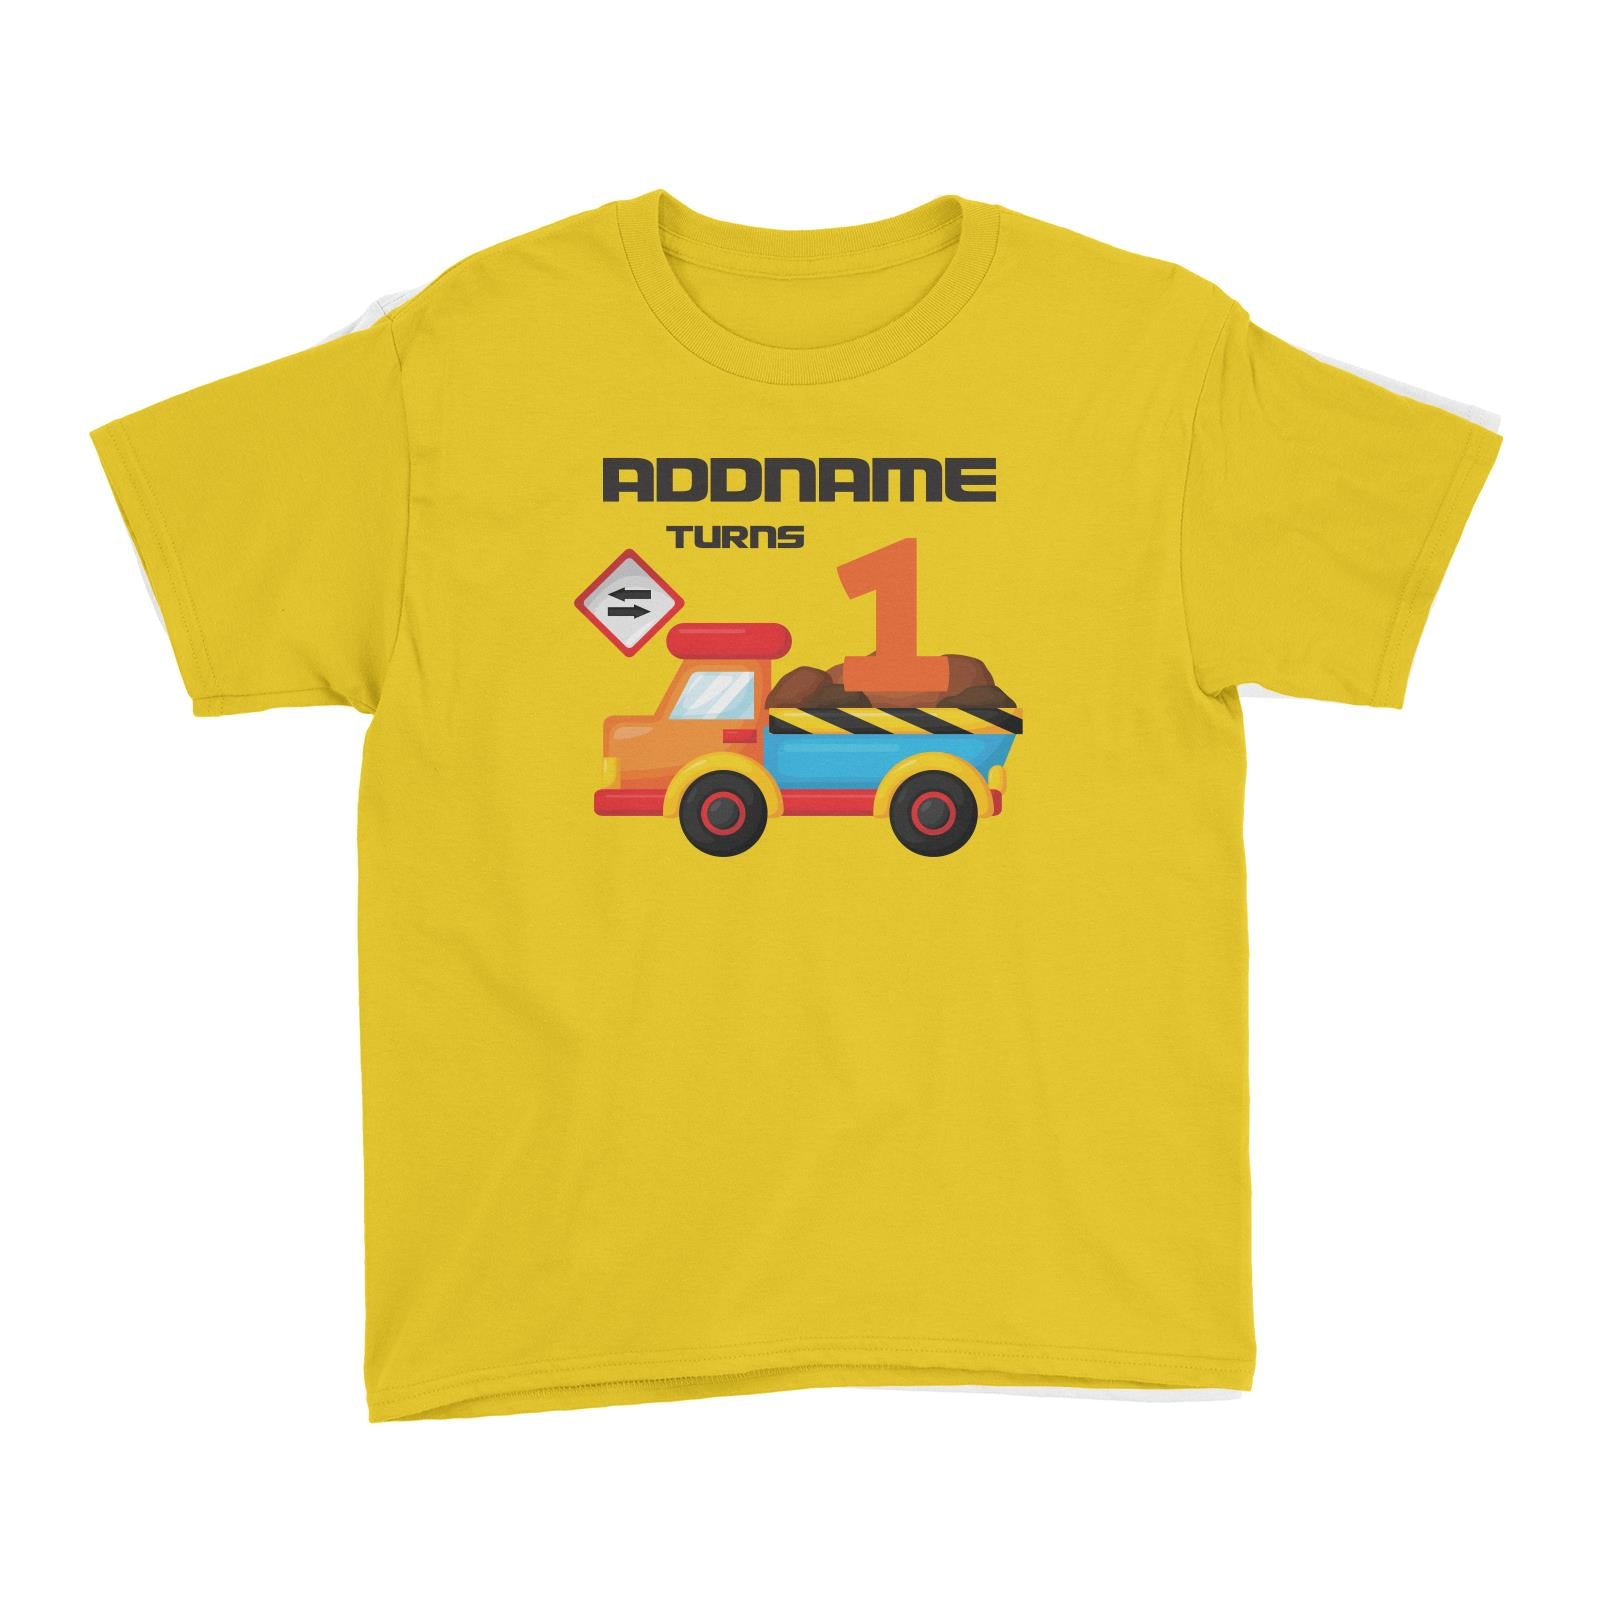 Birthday Construction Dump Truck Addname Turns 1 Kid's T-Shirt